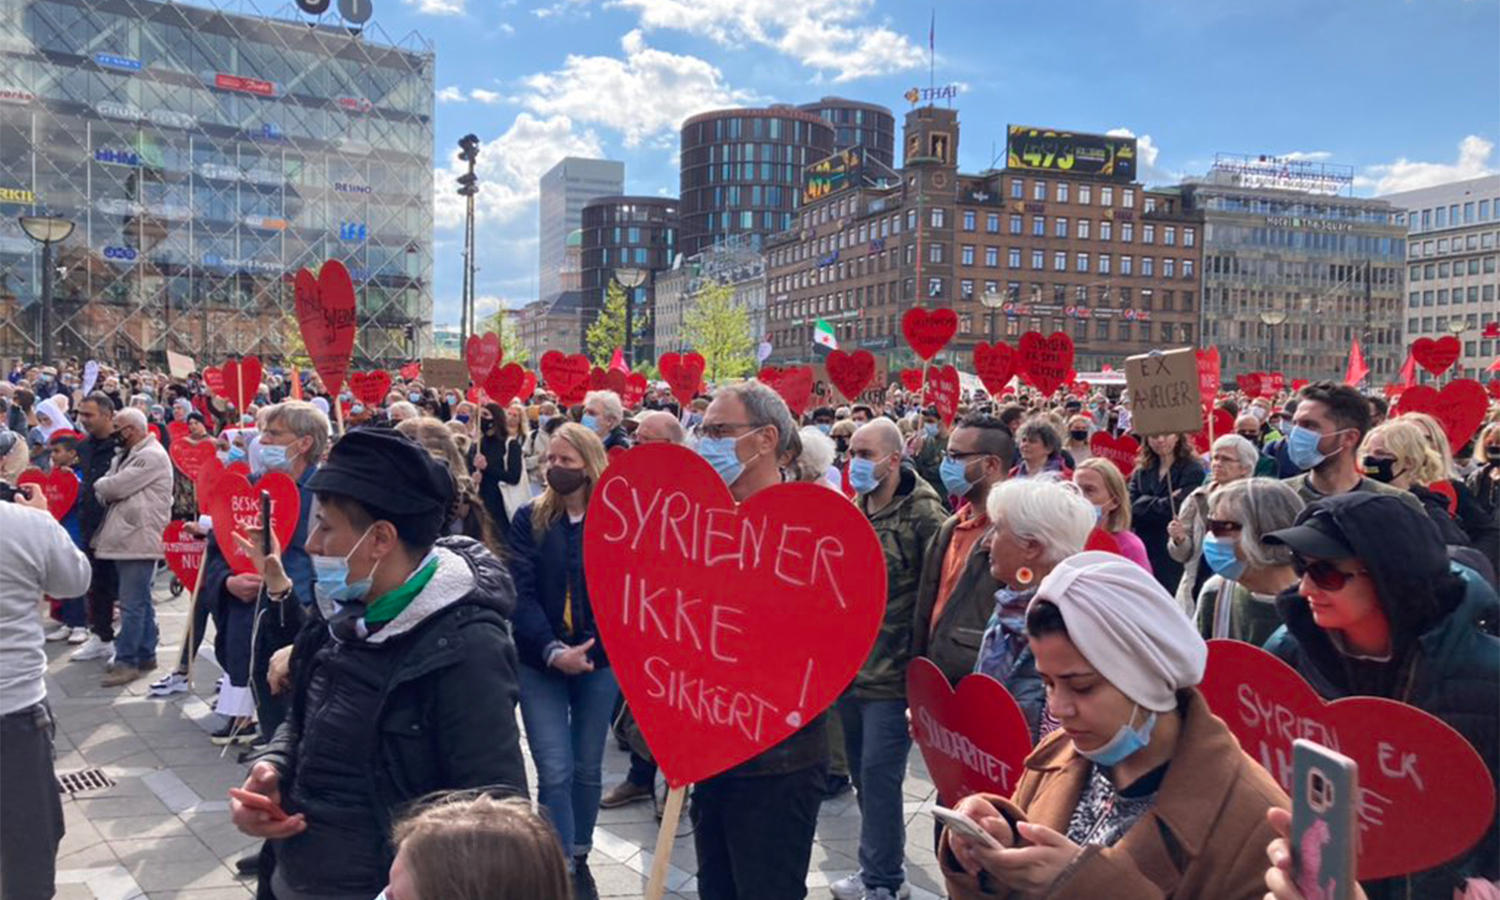 Rallies across Denmark against the decisions to deport Syrian refugees to Syria —19 May 2021 (Tim Whyte)